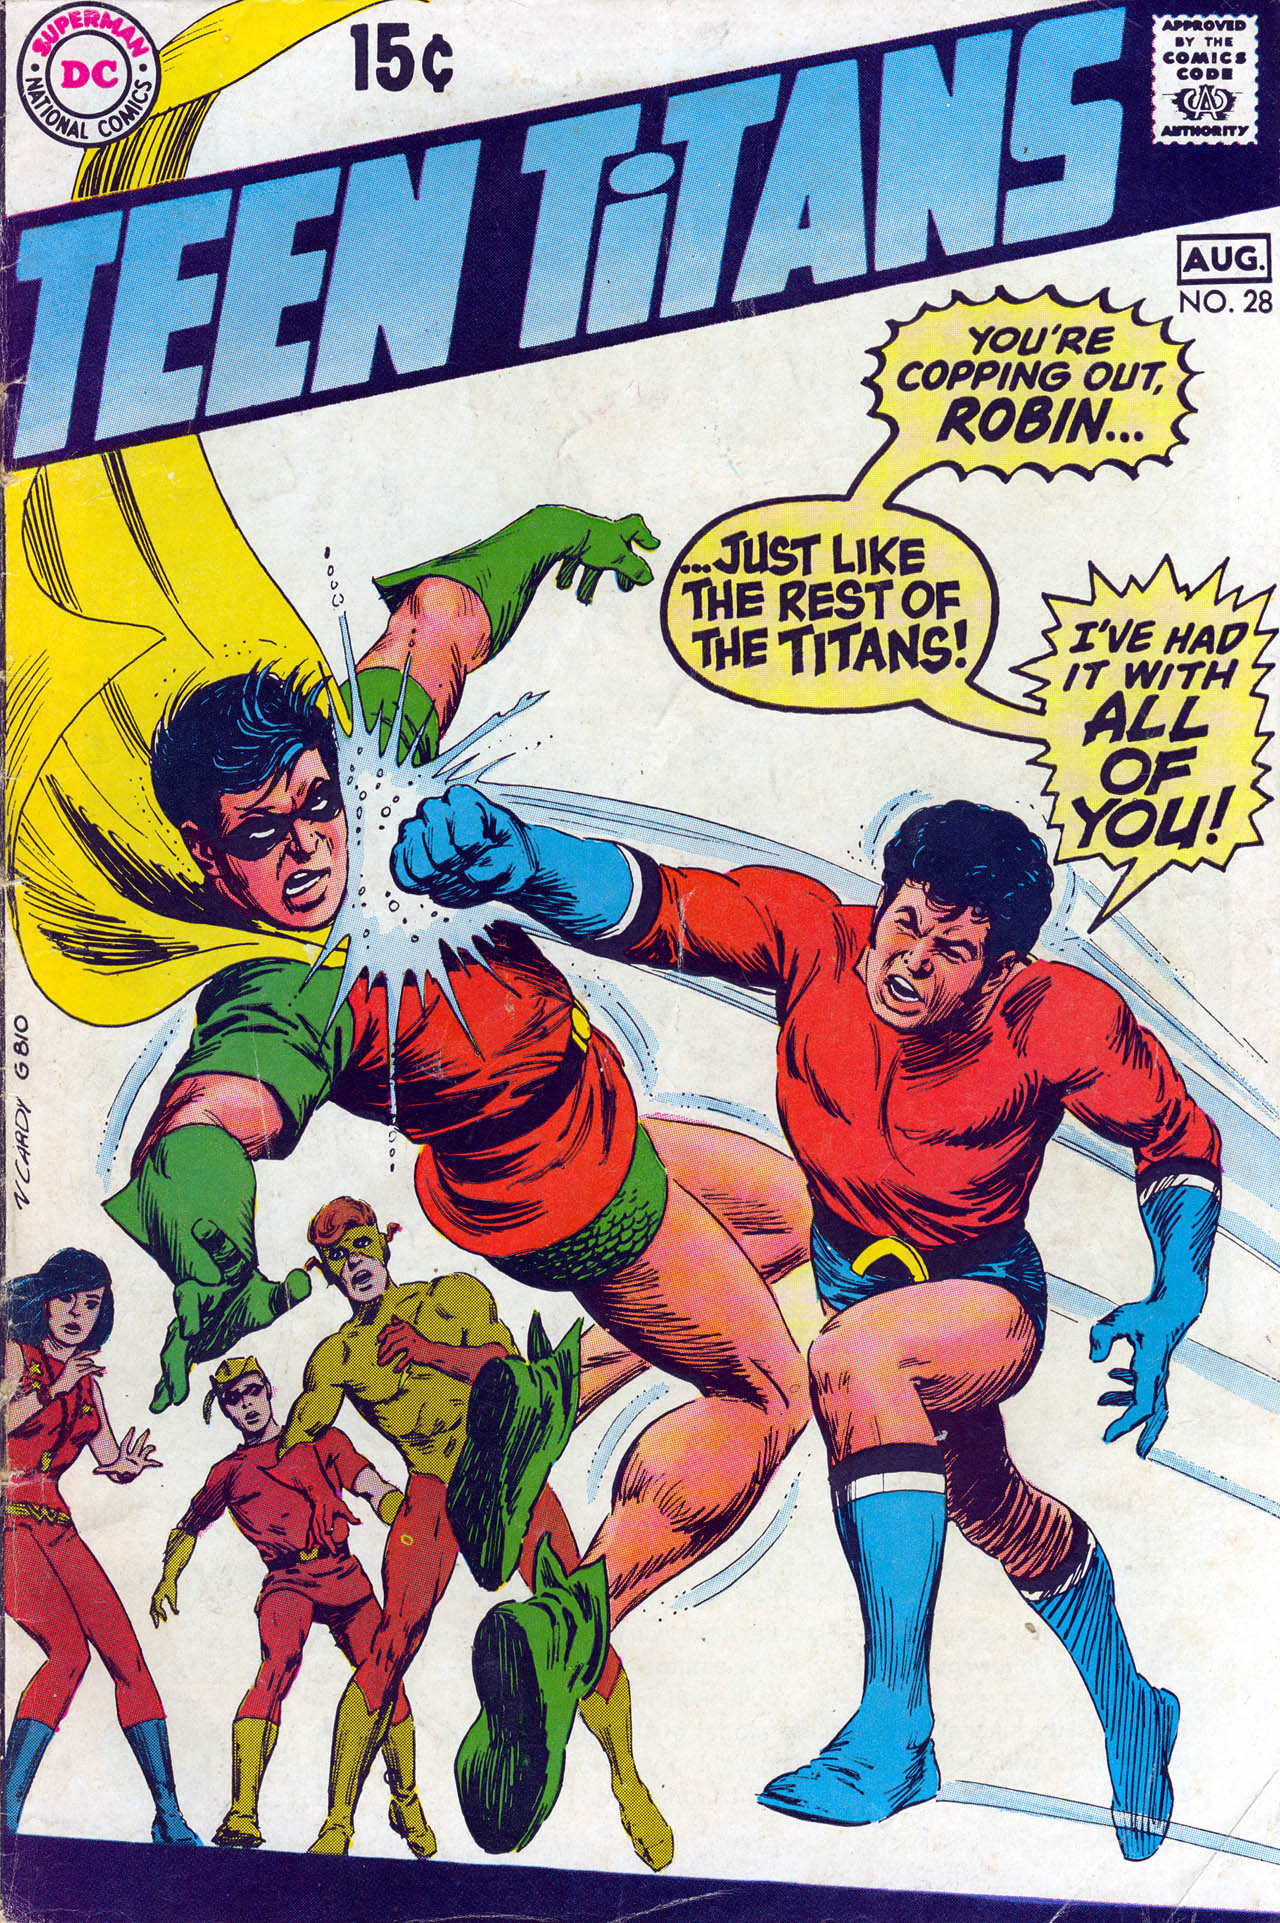 Teen Titans (1966) #28, cover by Nick Cardy.